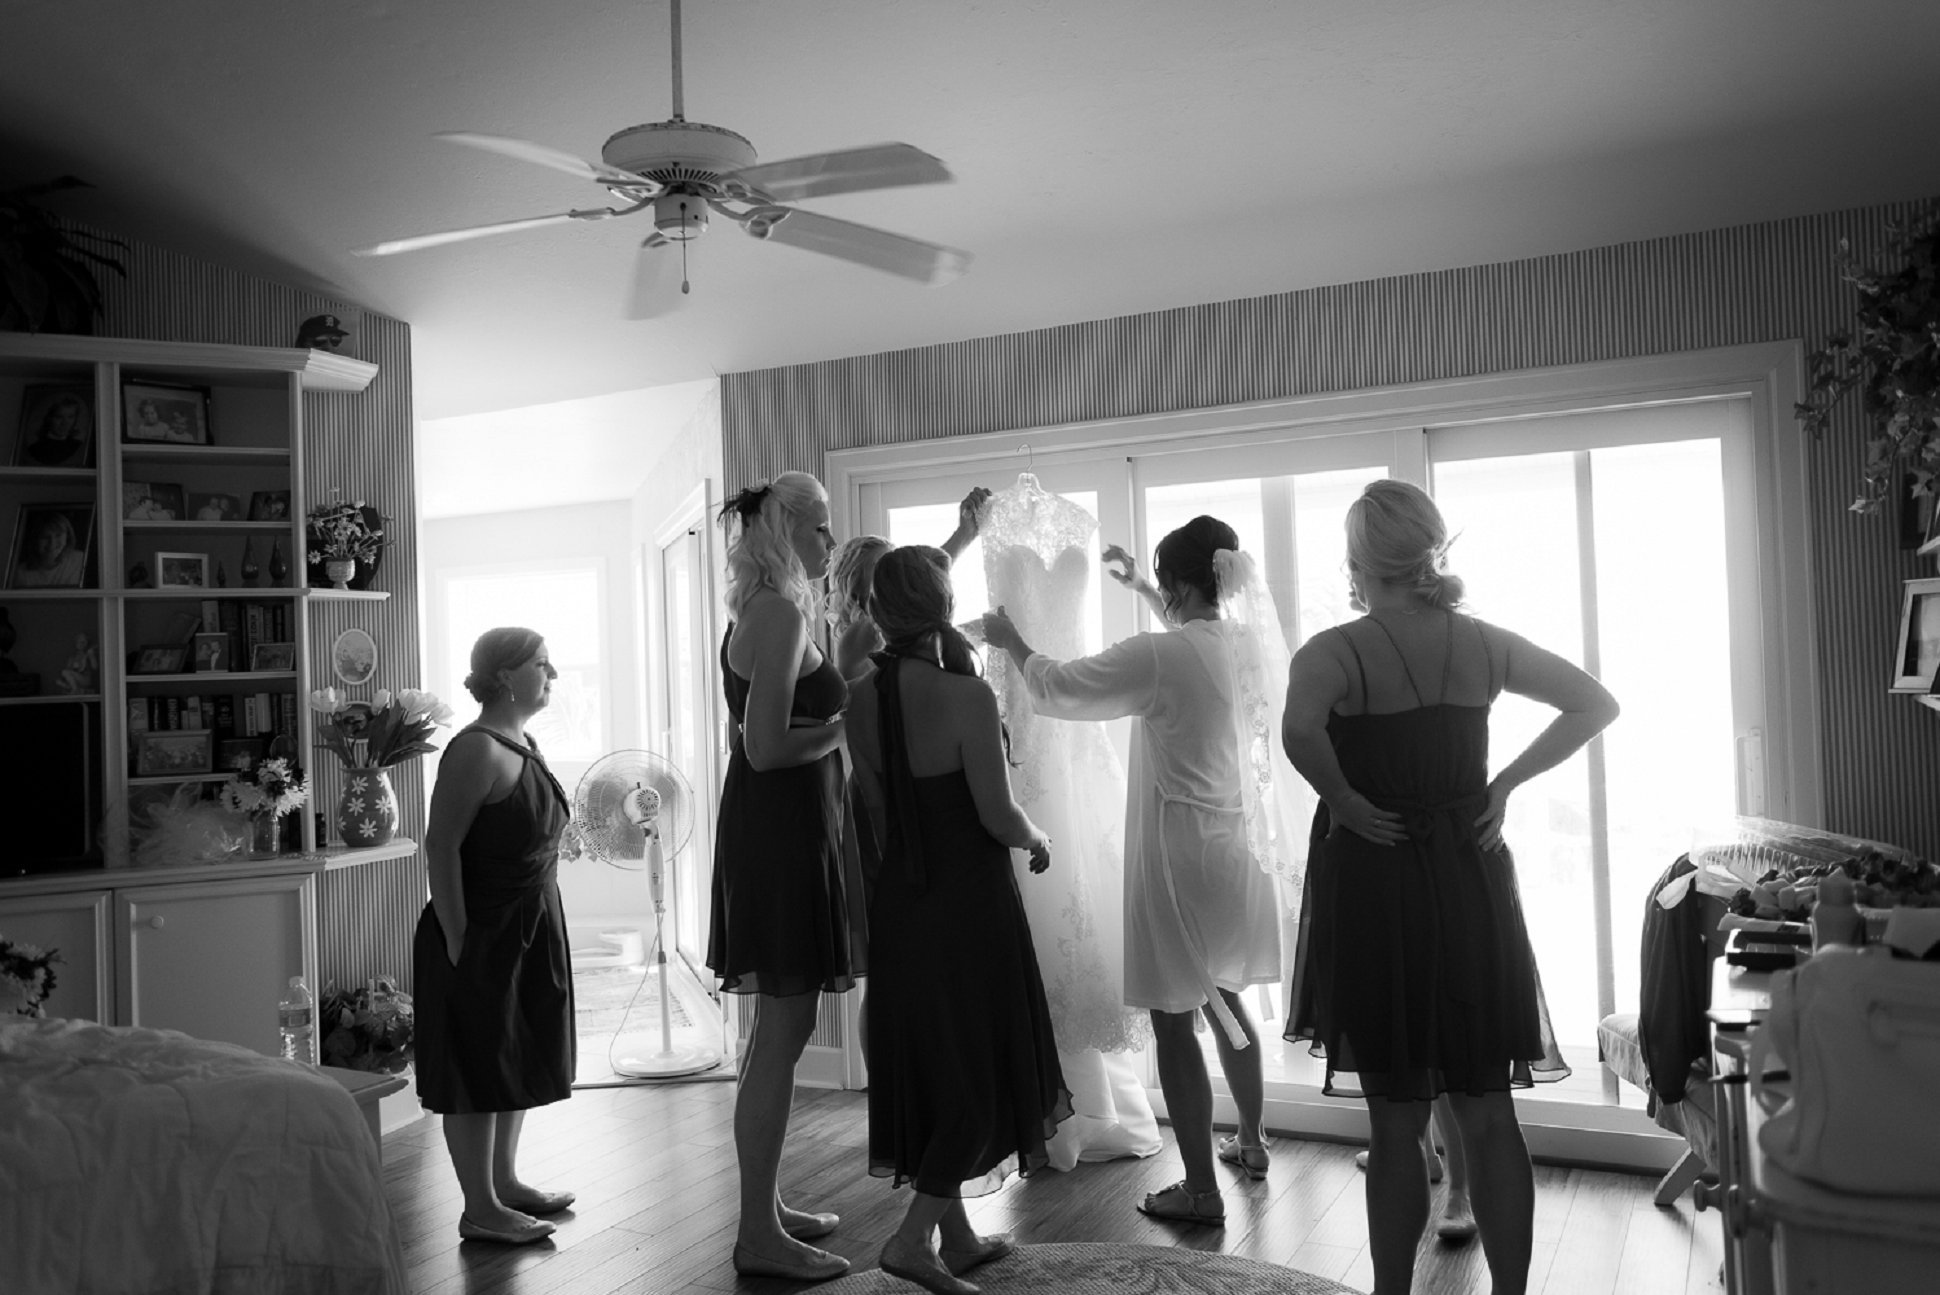 sanibel florida, wedding (5)